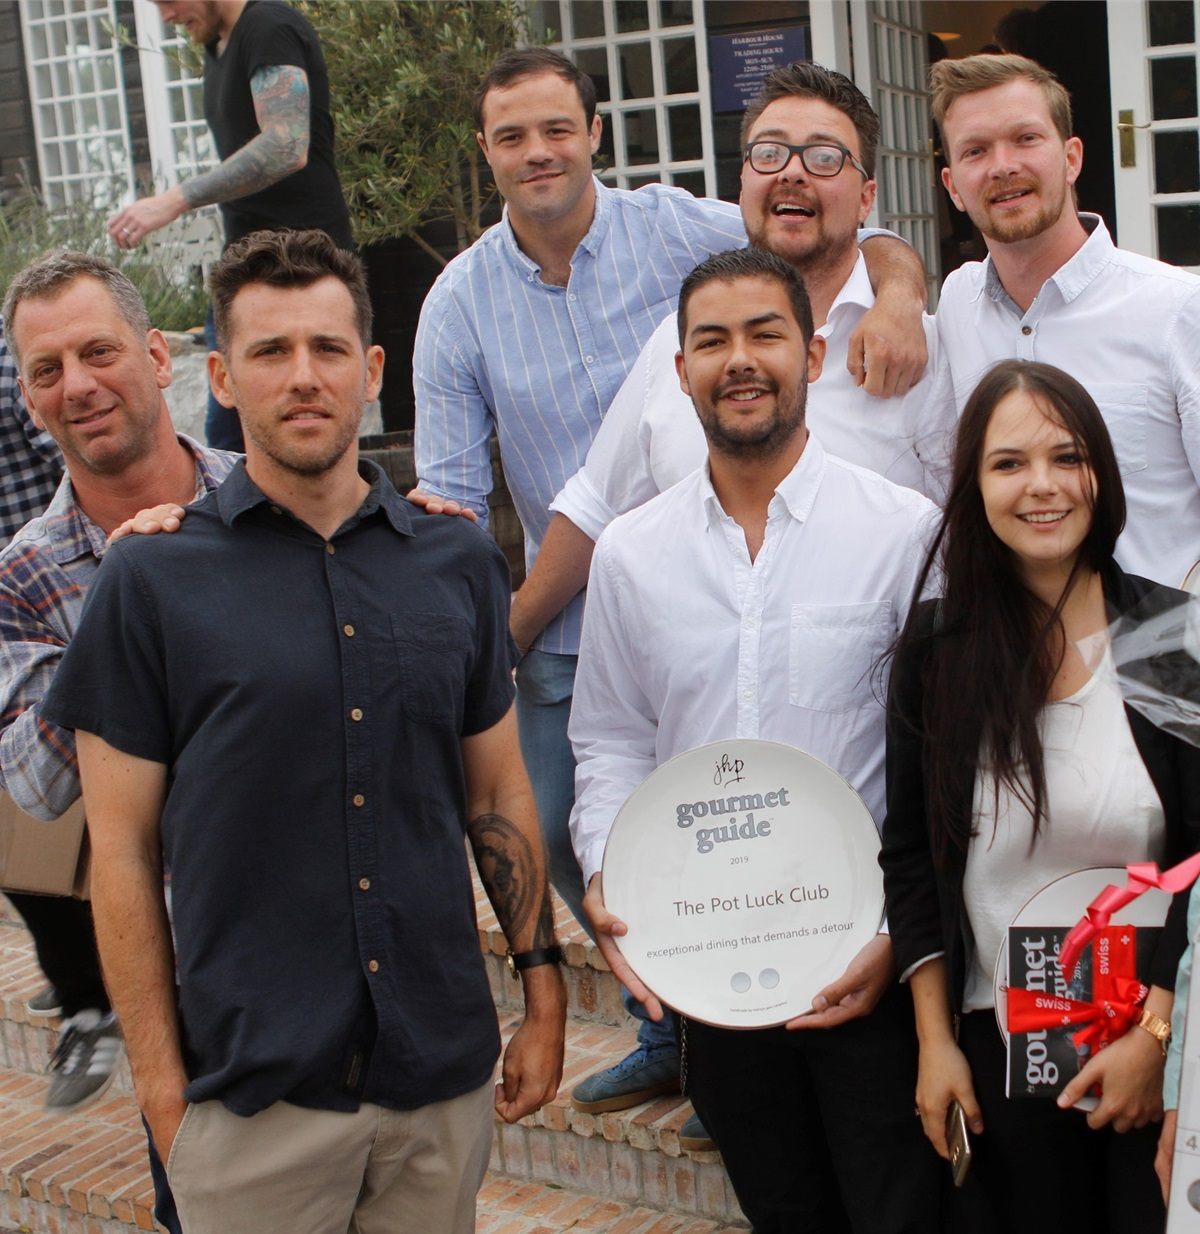 Jhp Gourmet Guide Highlights Sa's 25 Plated Chefs, Restaurants, And Recipes photo